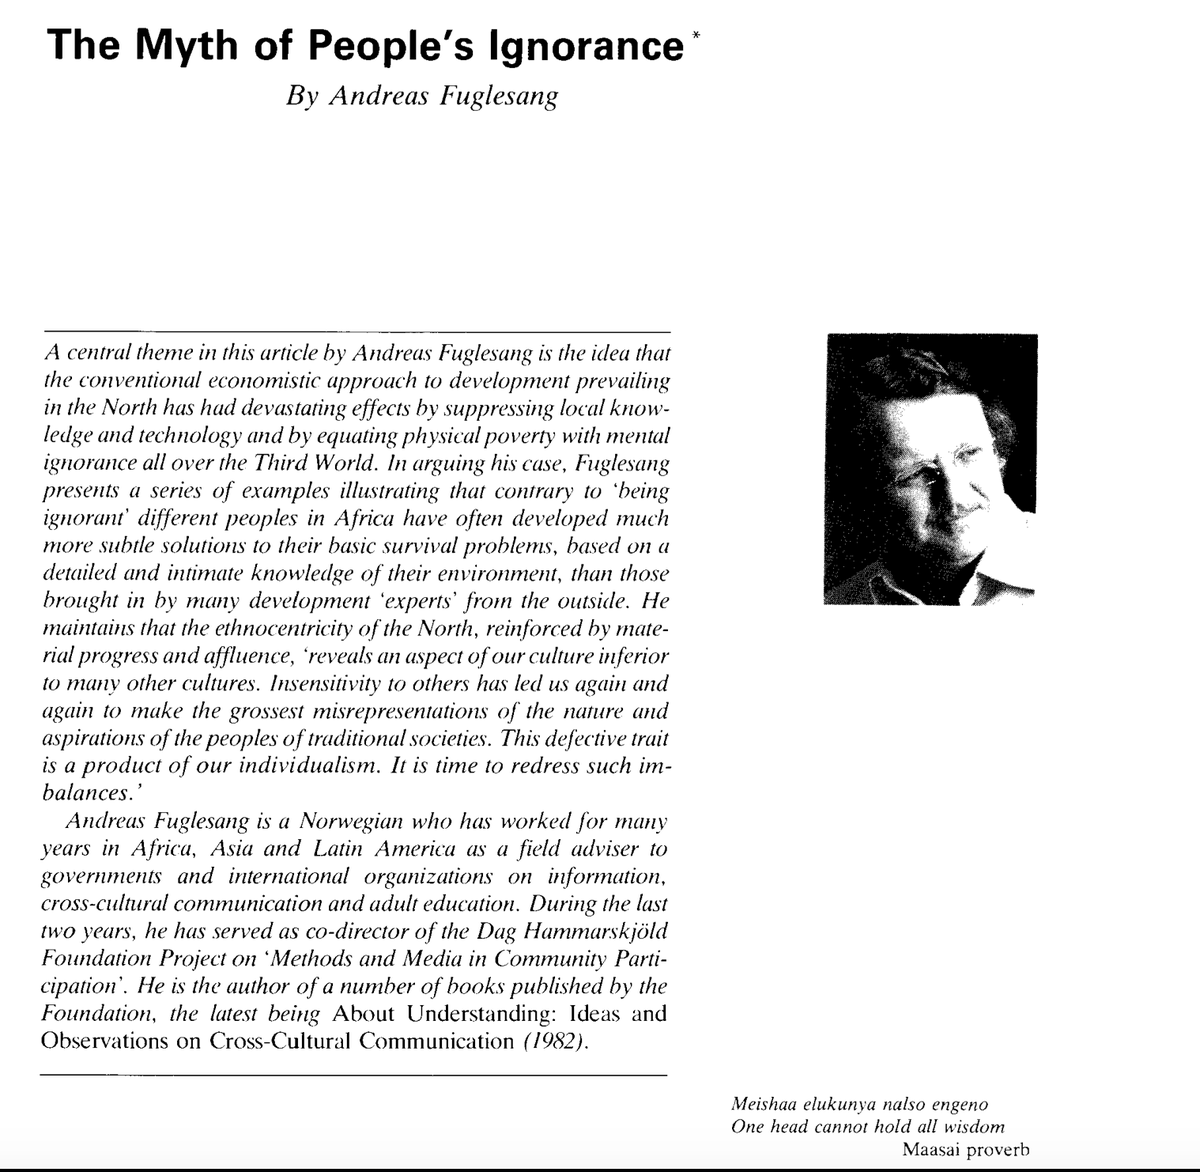 PS. H/T  @HenningMelber the article (not book) by Andreas Fugelsang on the story at the heart of this story is actually freely available through this link from  @DagHammarskjold:  http://www.daghammarskjold.se/wp-content/uploads/1984/08/84_1-2.pdf